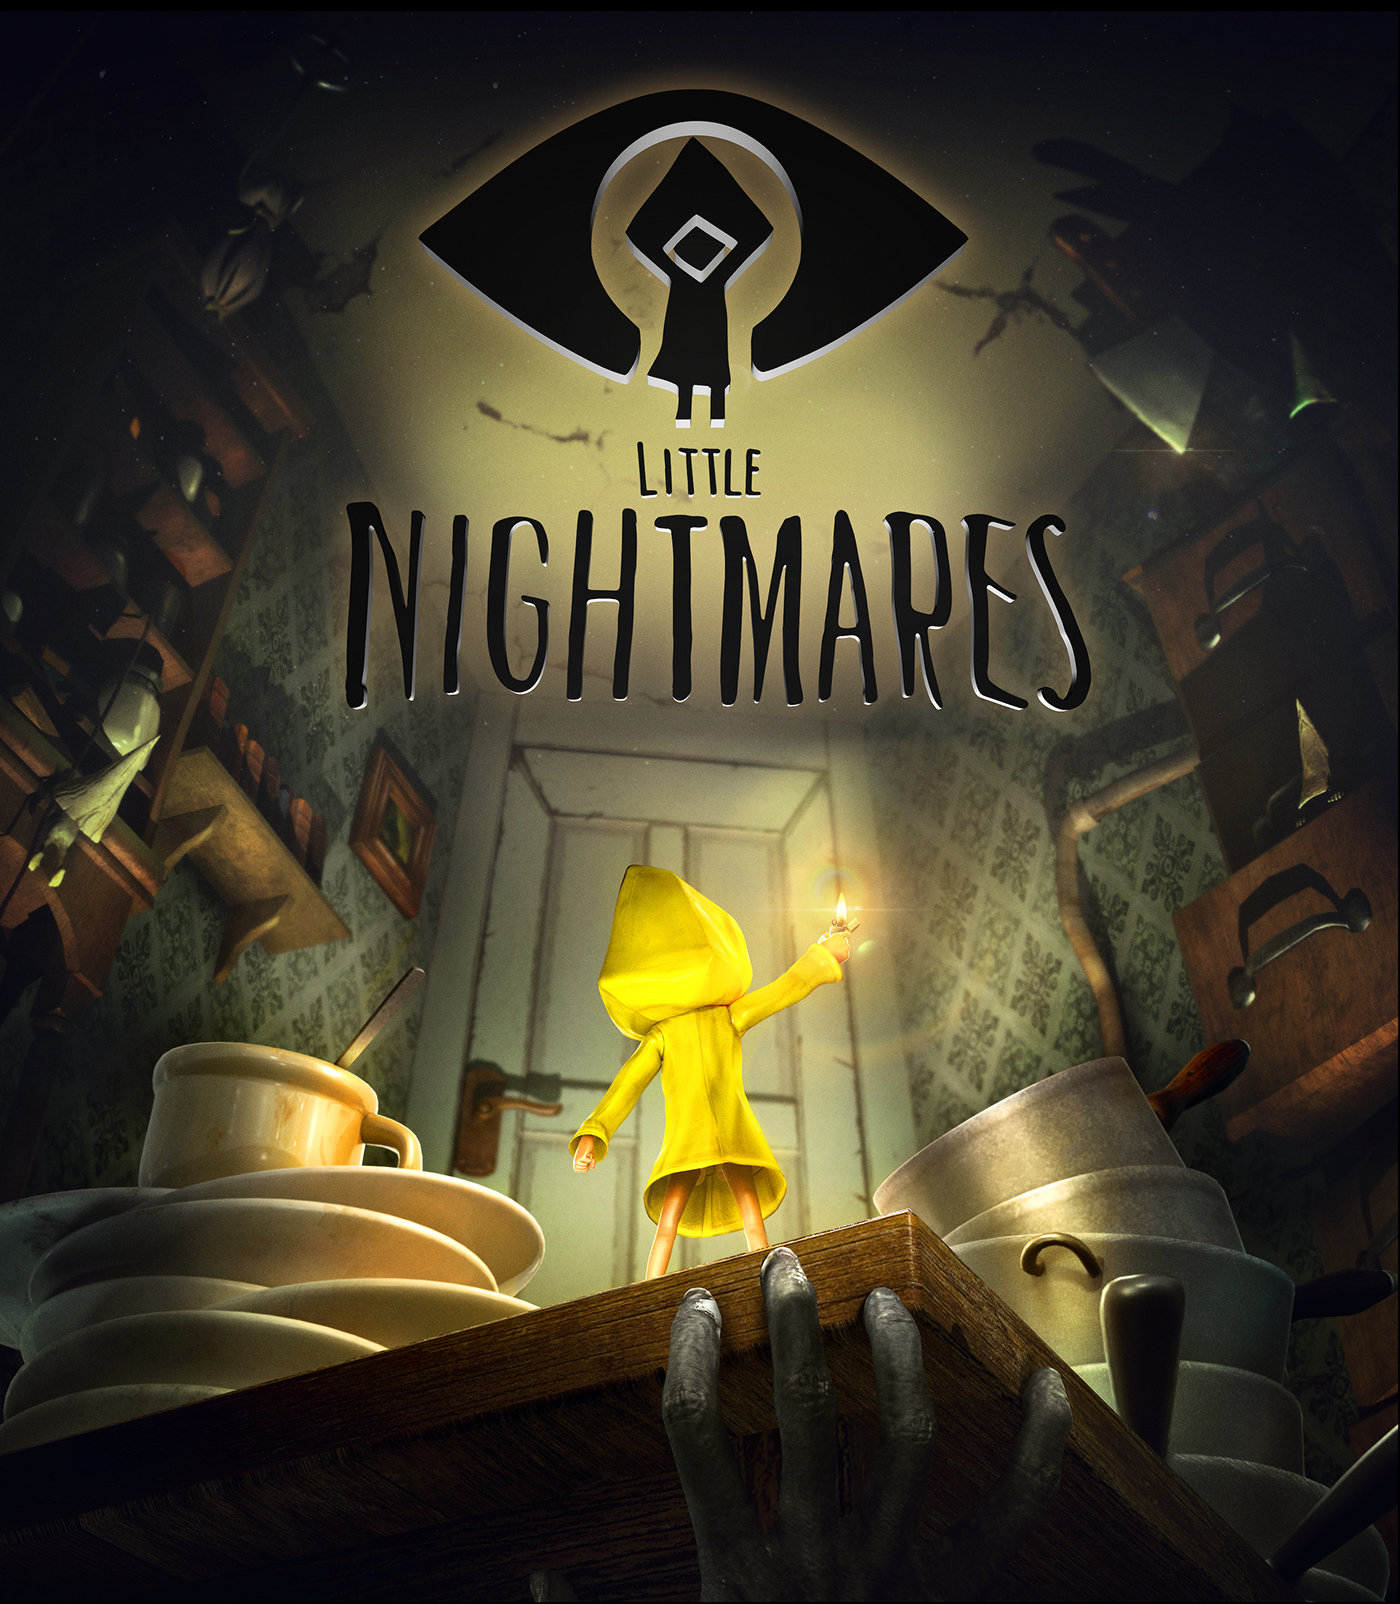 Little Nightmares horror cute video game hunger Indie game six Shadows lighter creepy